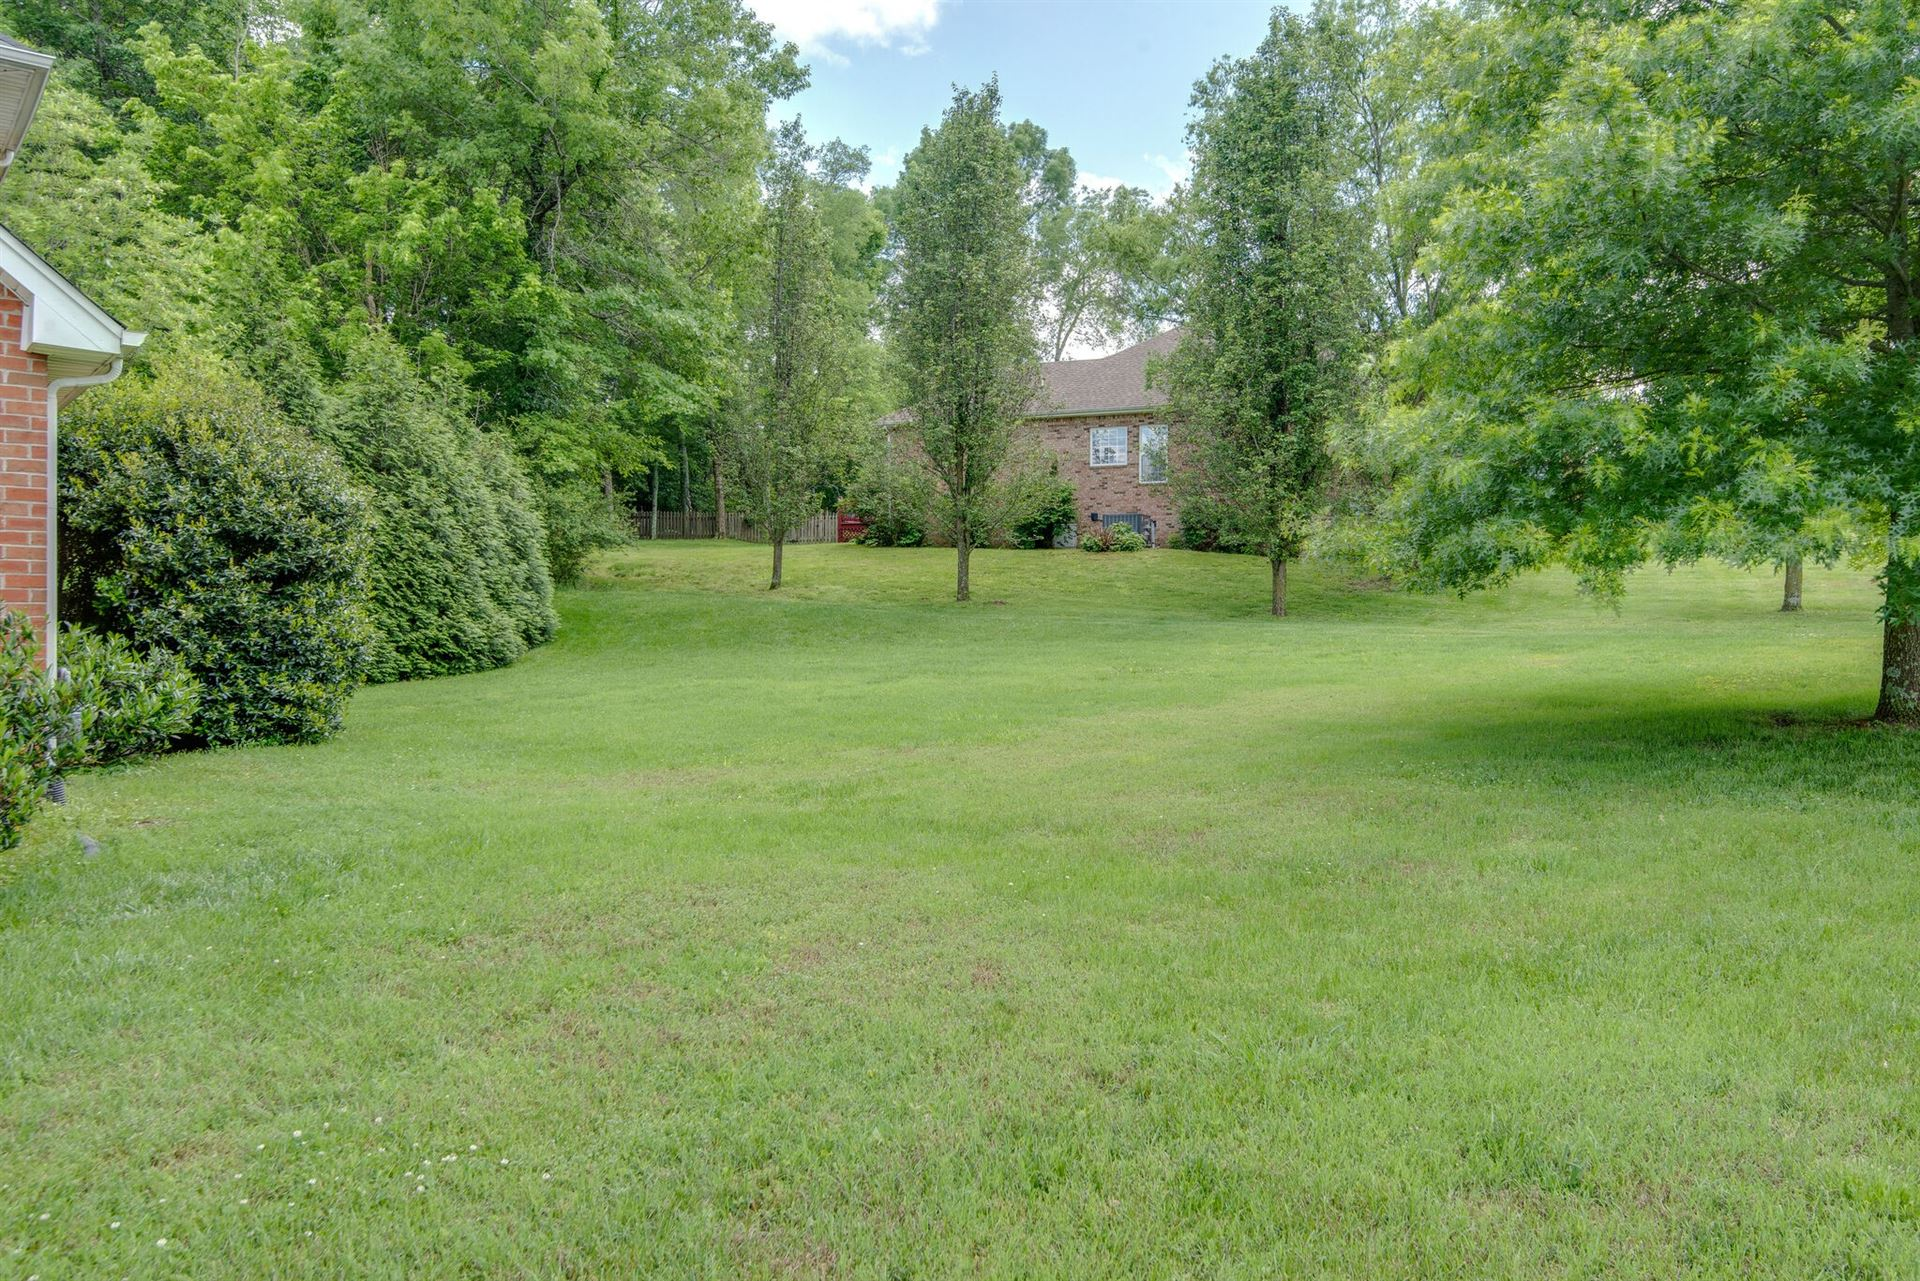 Photo of 801 Piccadilly Dr, Nolensville, TN 37135 (MLS # 2154652)